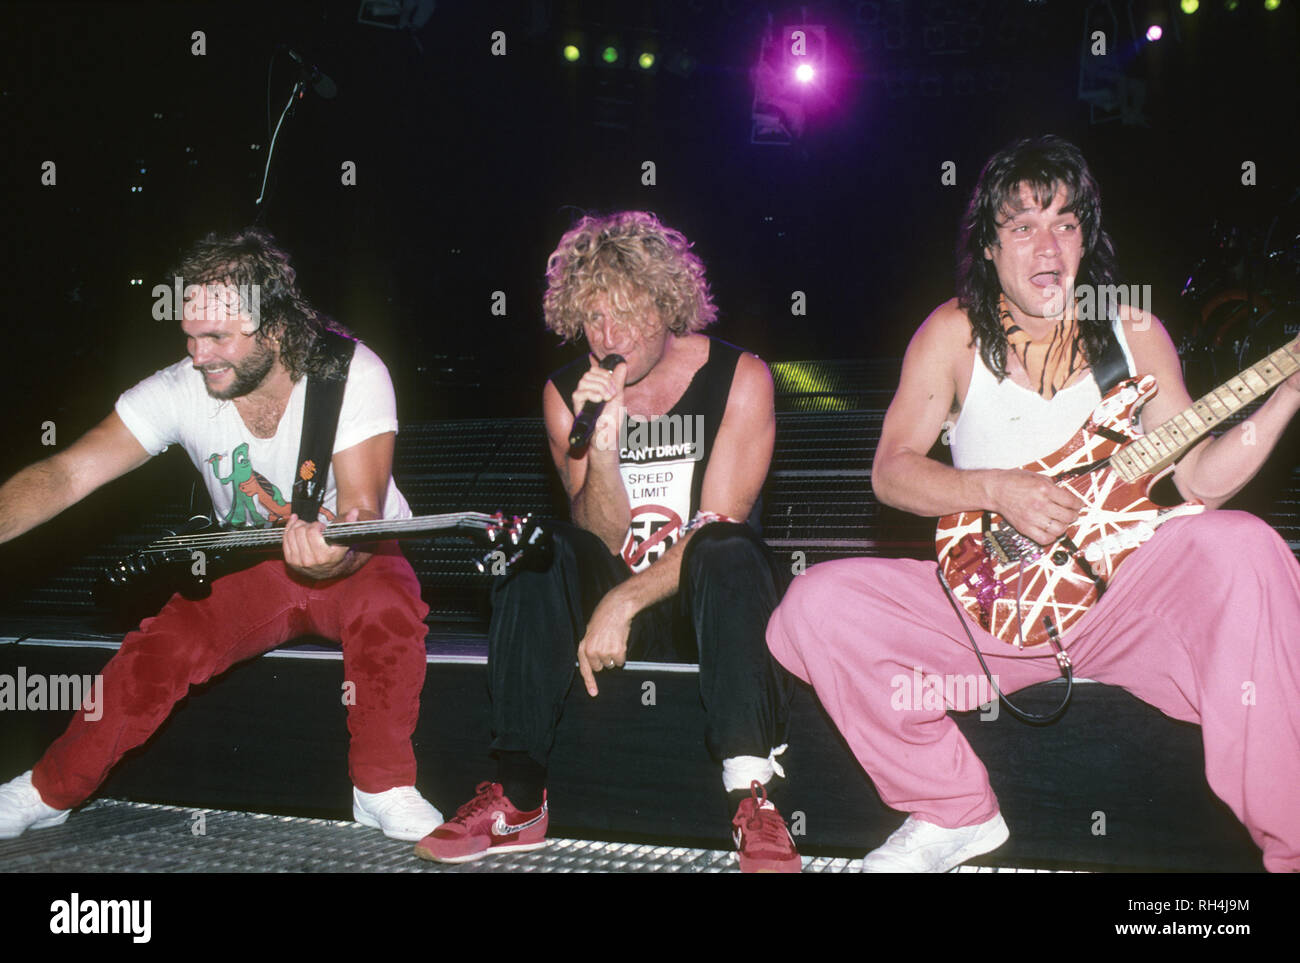 Van Halen American Rock Group About 1988 From Left Alex Van Halen David Lee Roth Eddie Van Halen Photo Jeffrey Mayer Stock Photo Alamy